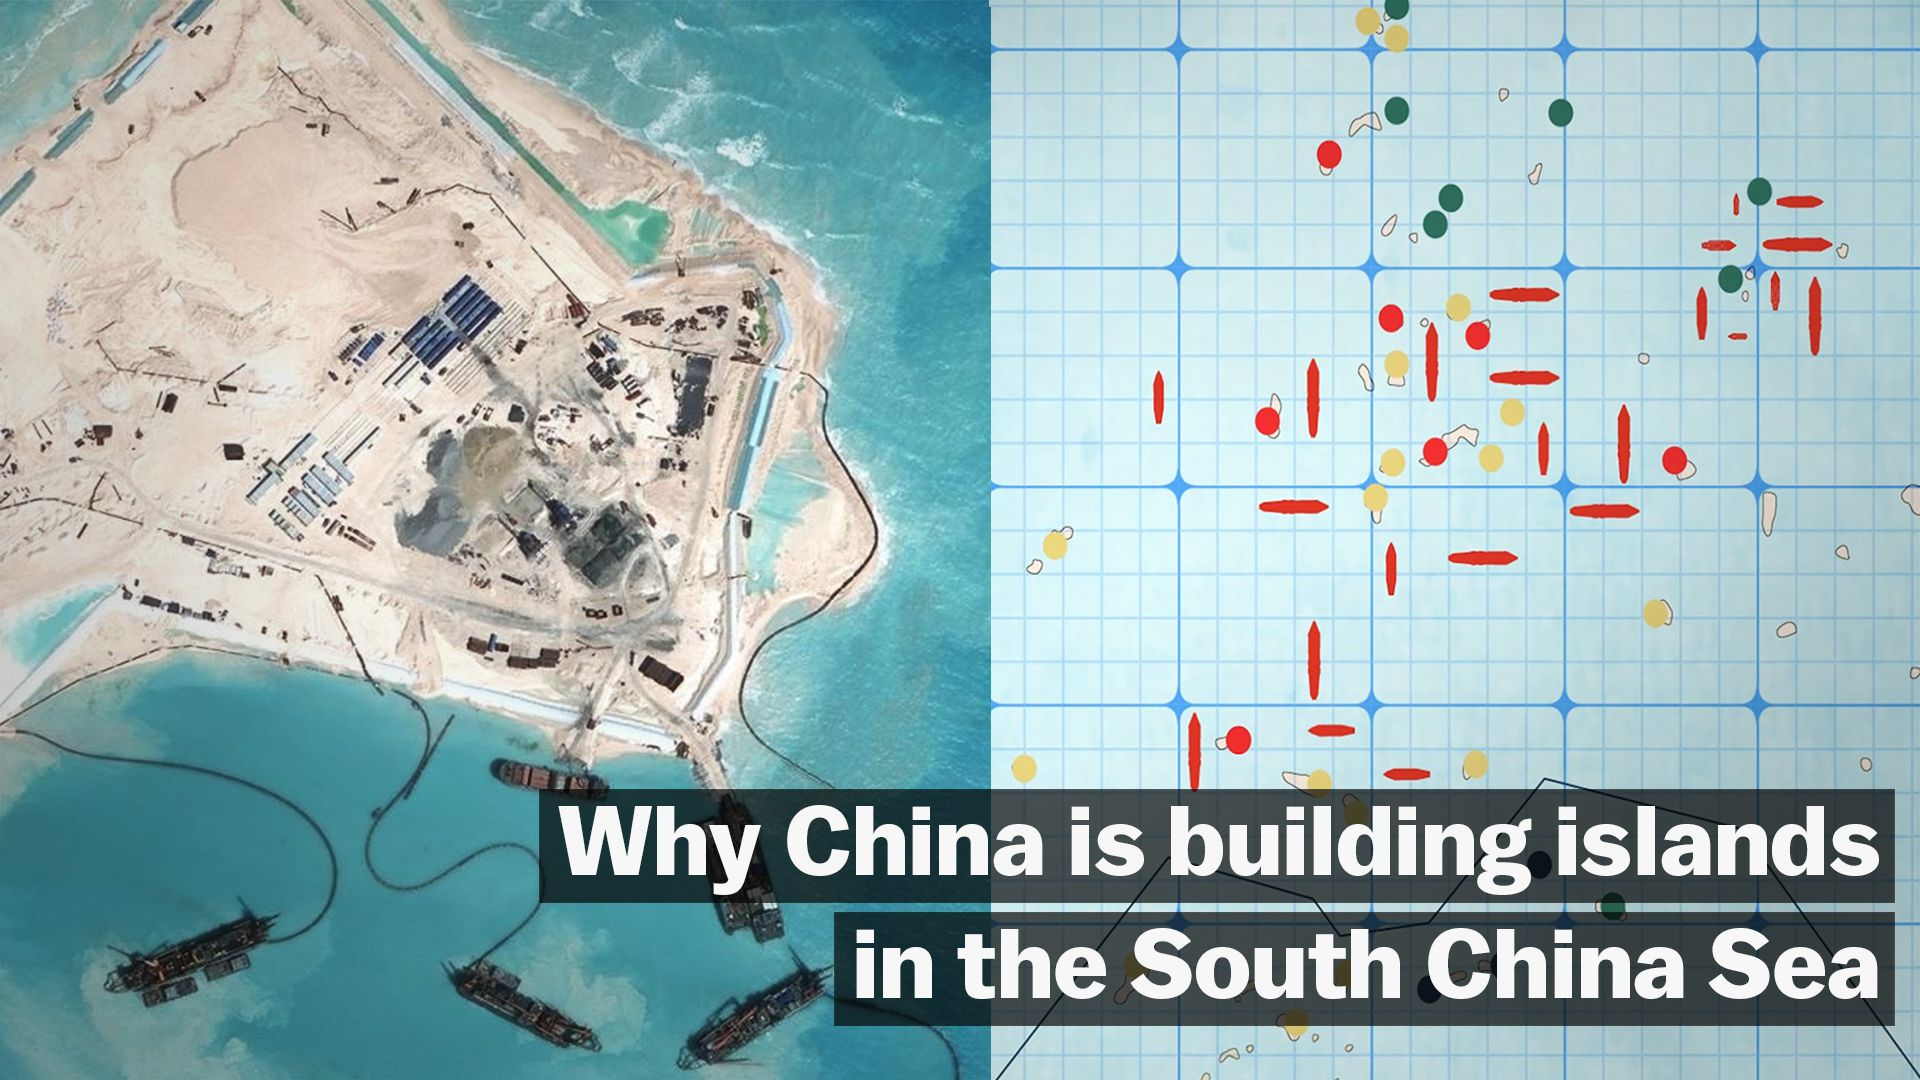 Why China is building islands in the South China Sea - Vox